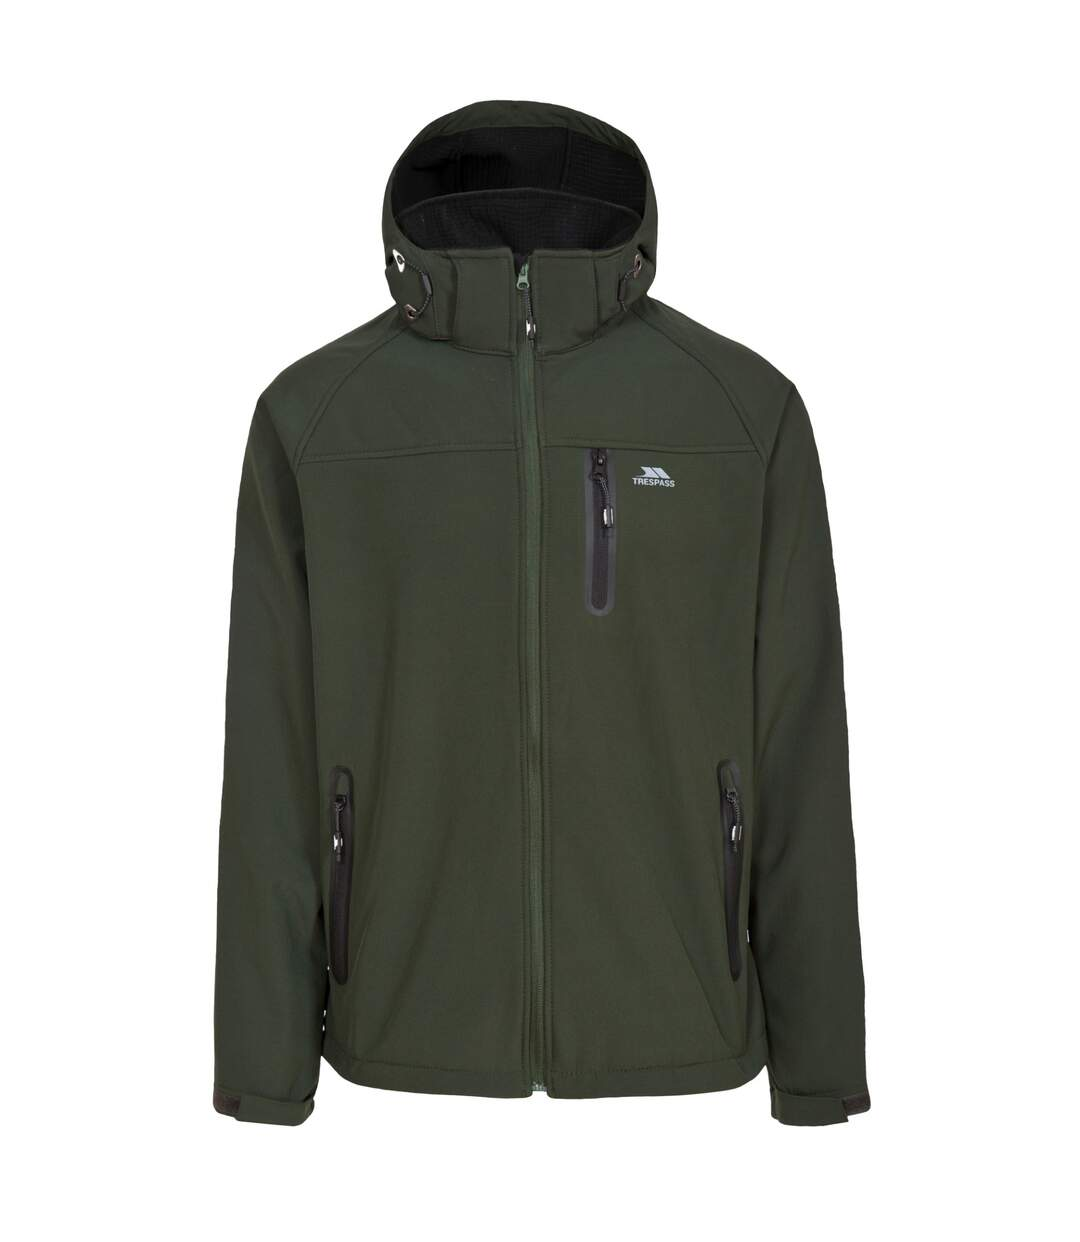 Trespass Mens Accelerator II Waterproof Softshell Jacket (Olive) - UTTP3263